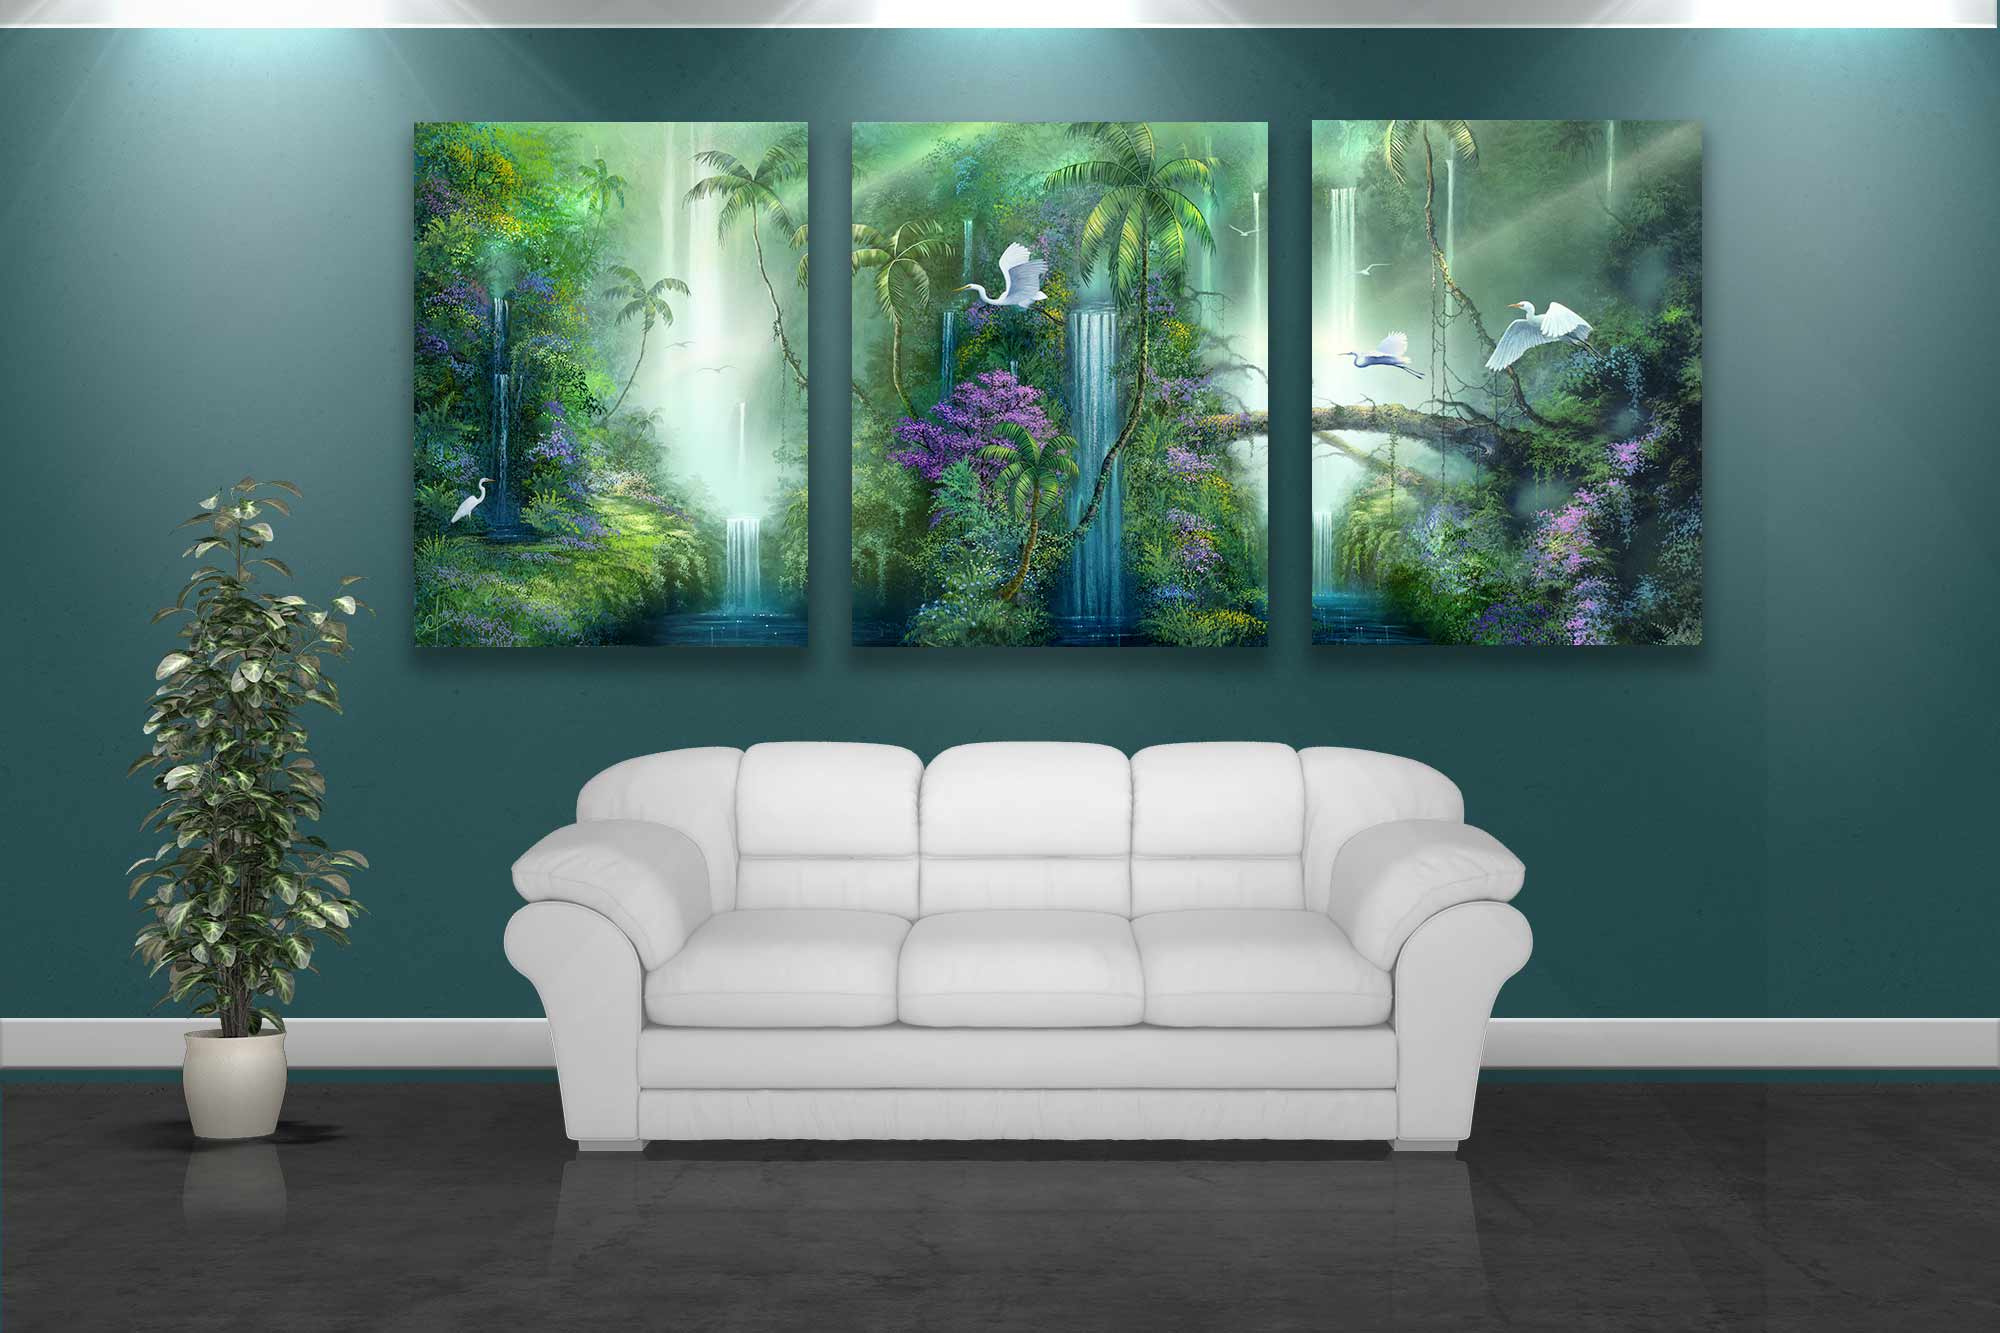 Tropical Artwork Artist David Miller Paintings And Artwork For Your Walls